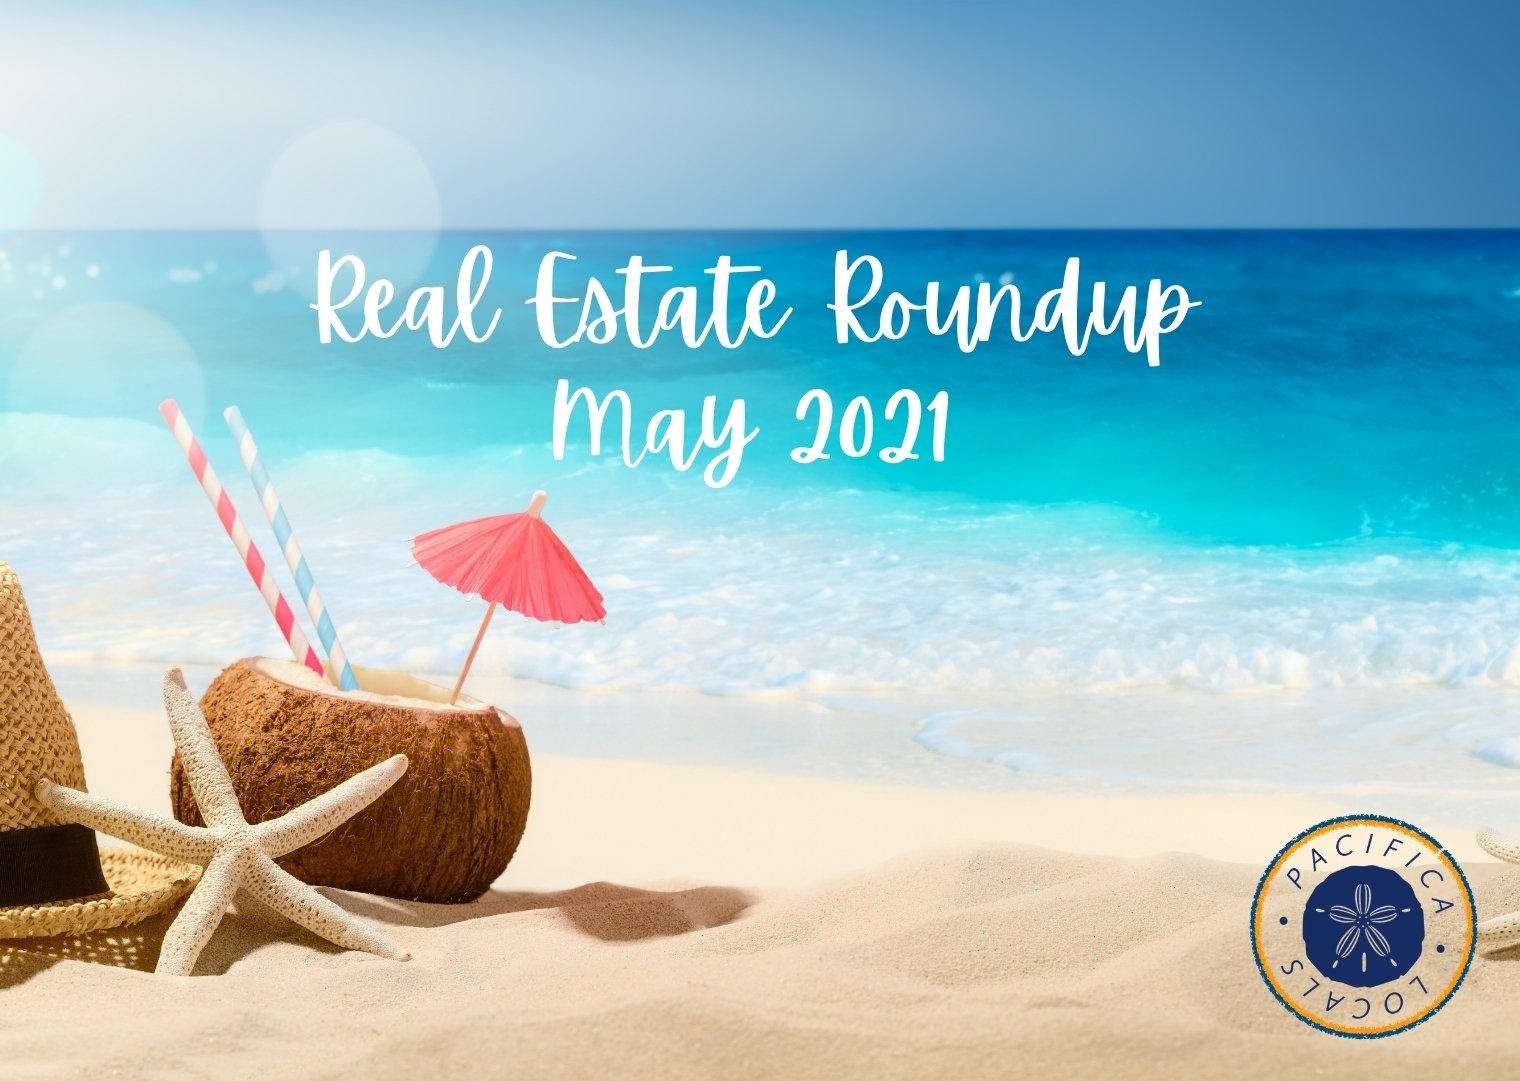 image of the beach with a starfish hat and drink in a coconut text real estate round up may 2021